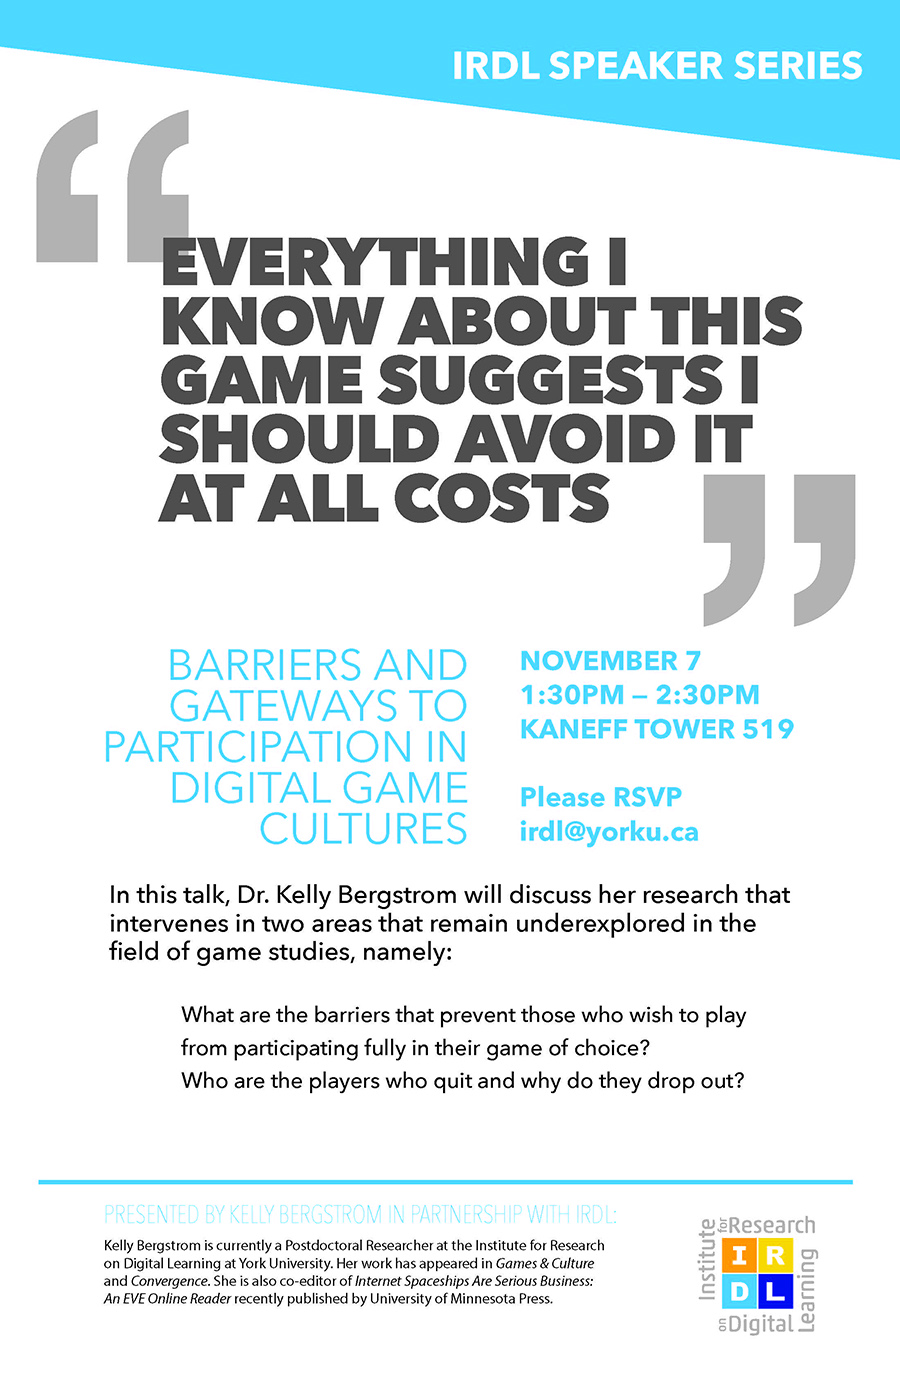 Barriers and Gateways to Participation in Digital Game Cultures